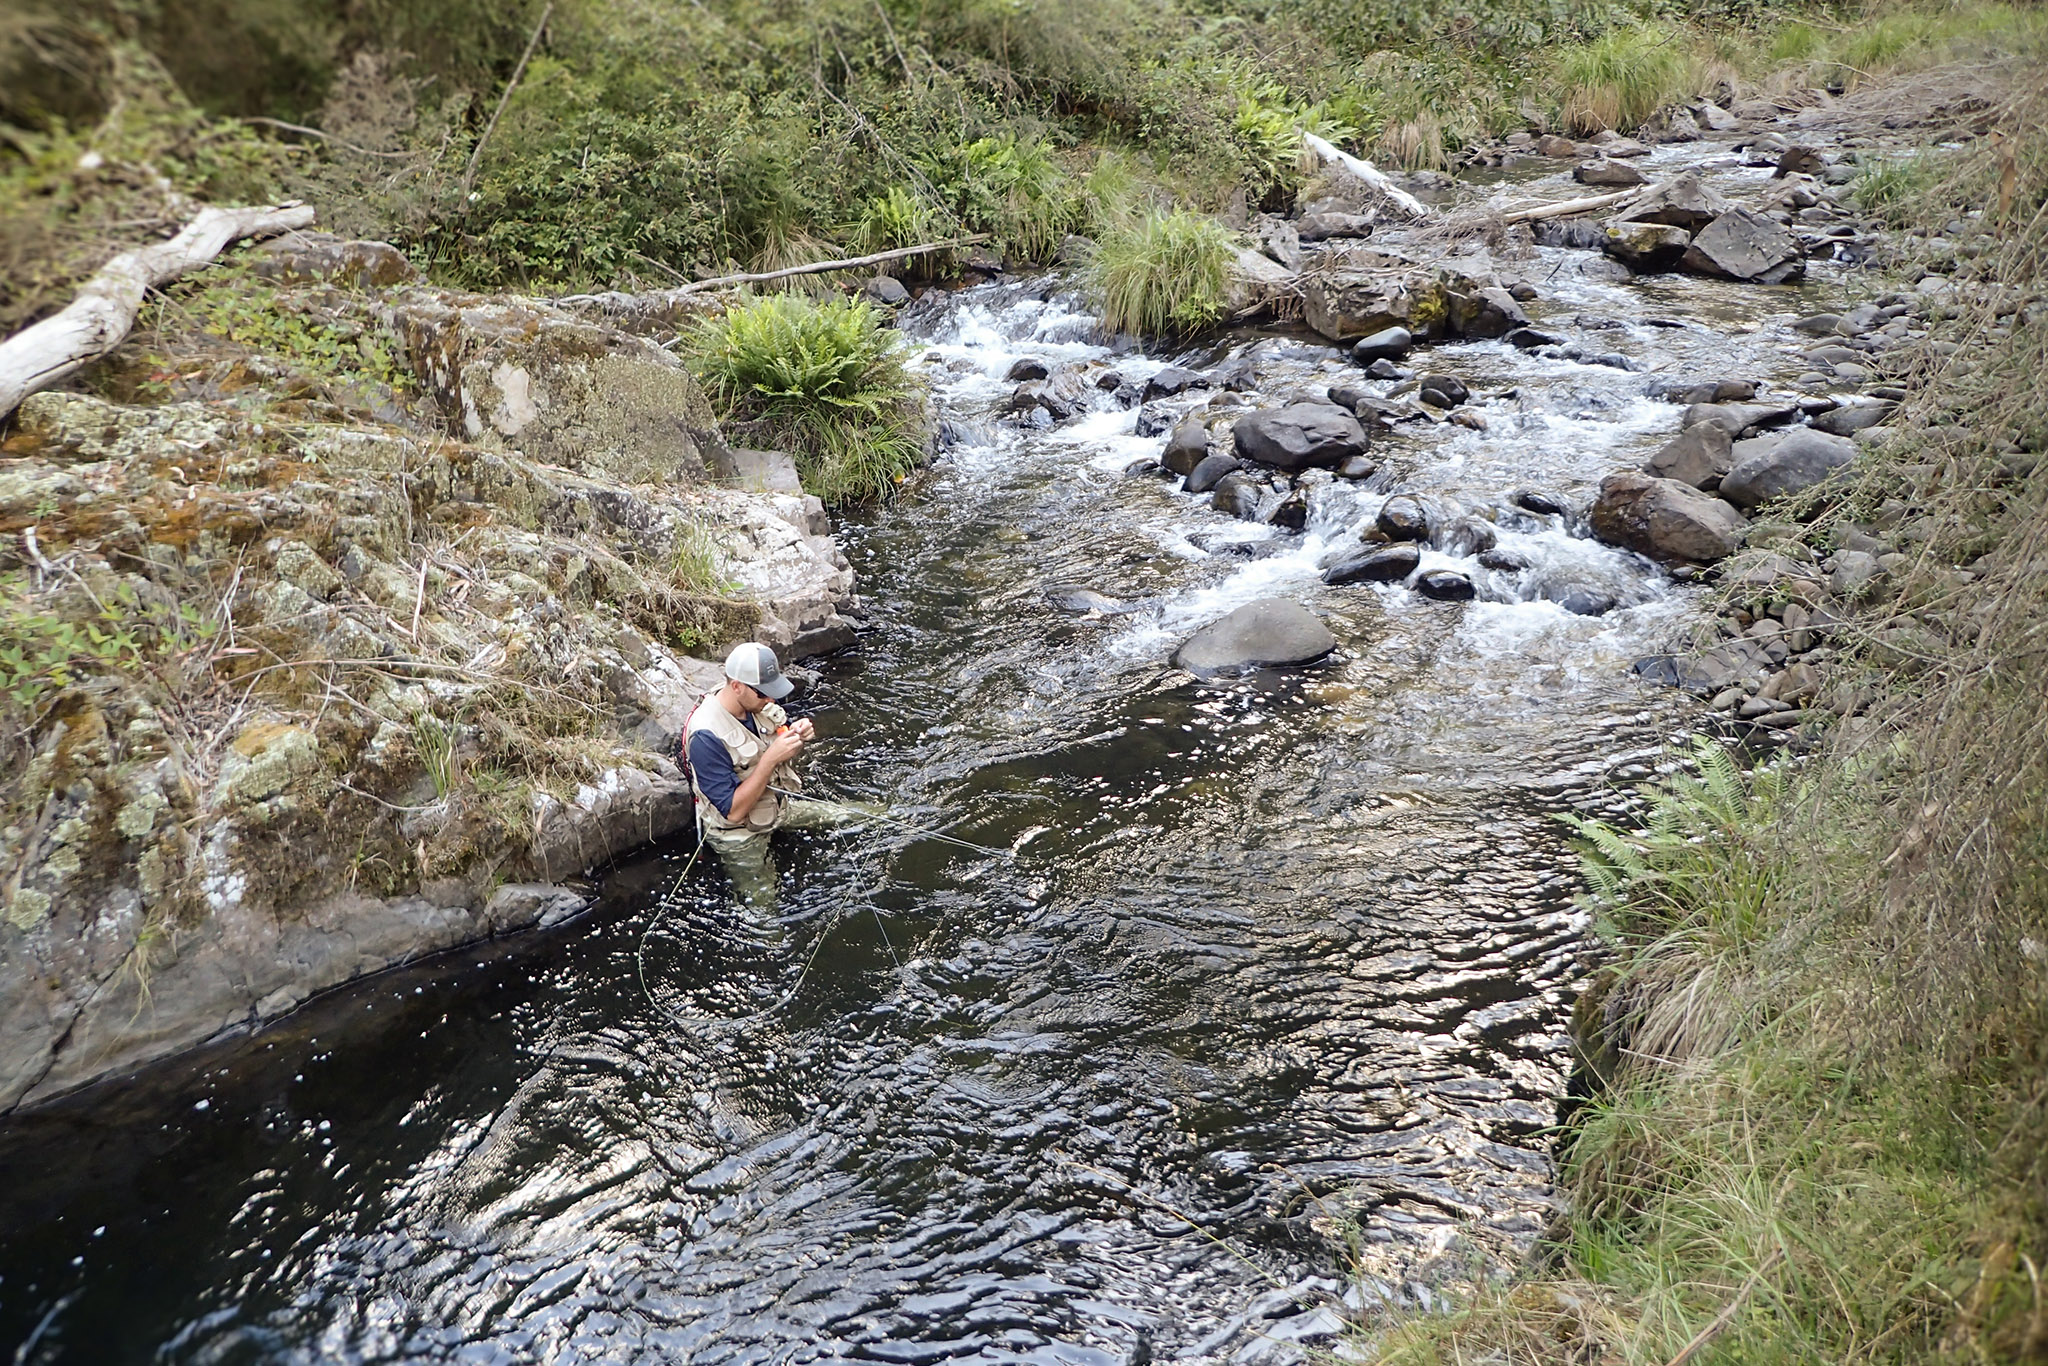 Small stream fly fishing in Australia